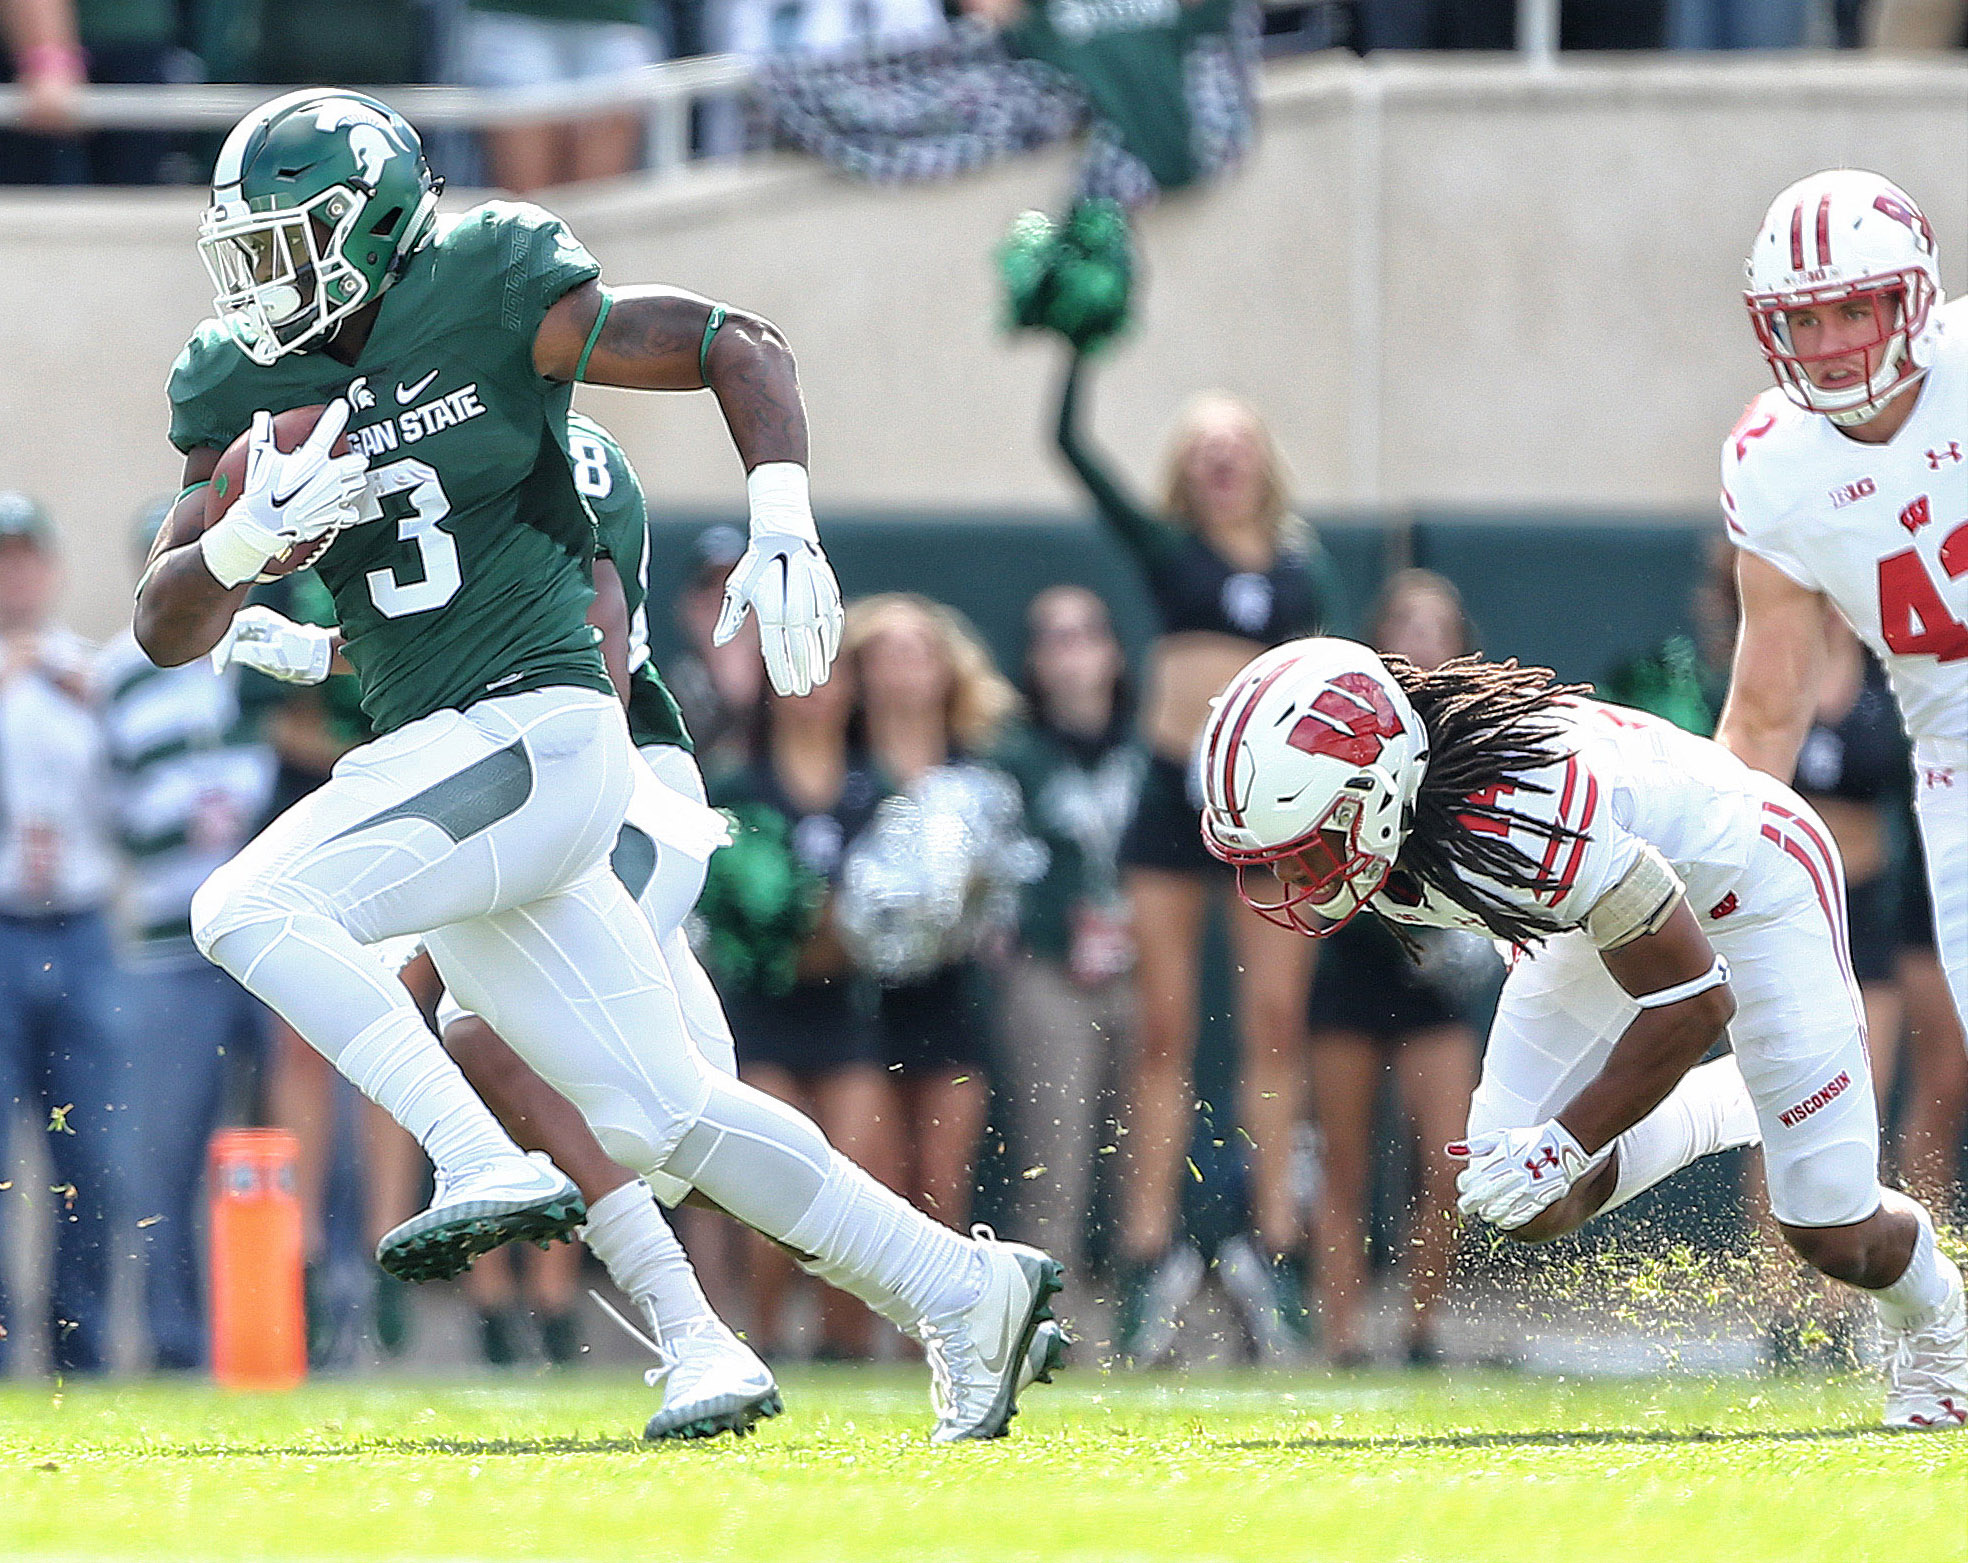 Sep 24, 2016; East Lansing, MI, USA; Michigan State Spartans running back LJ Scott (3) runs the ball during the first quarter of a game against the Wisconsin Badgers at Spartan Stadium. Mandatory Credit: Mike Carter-USA TODAY Sports